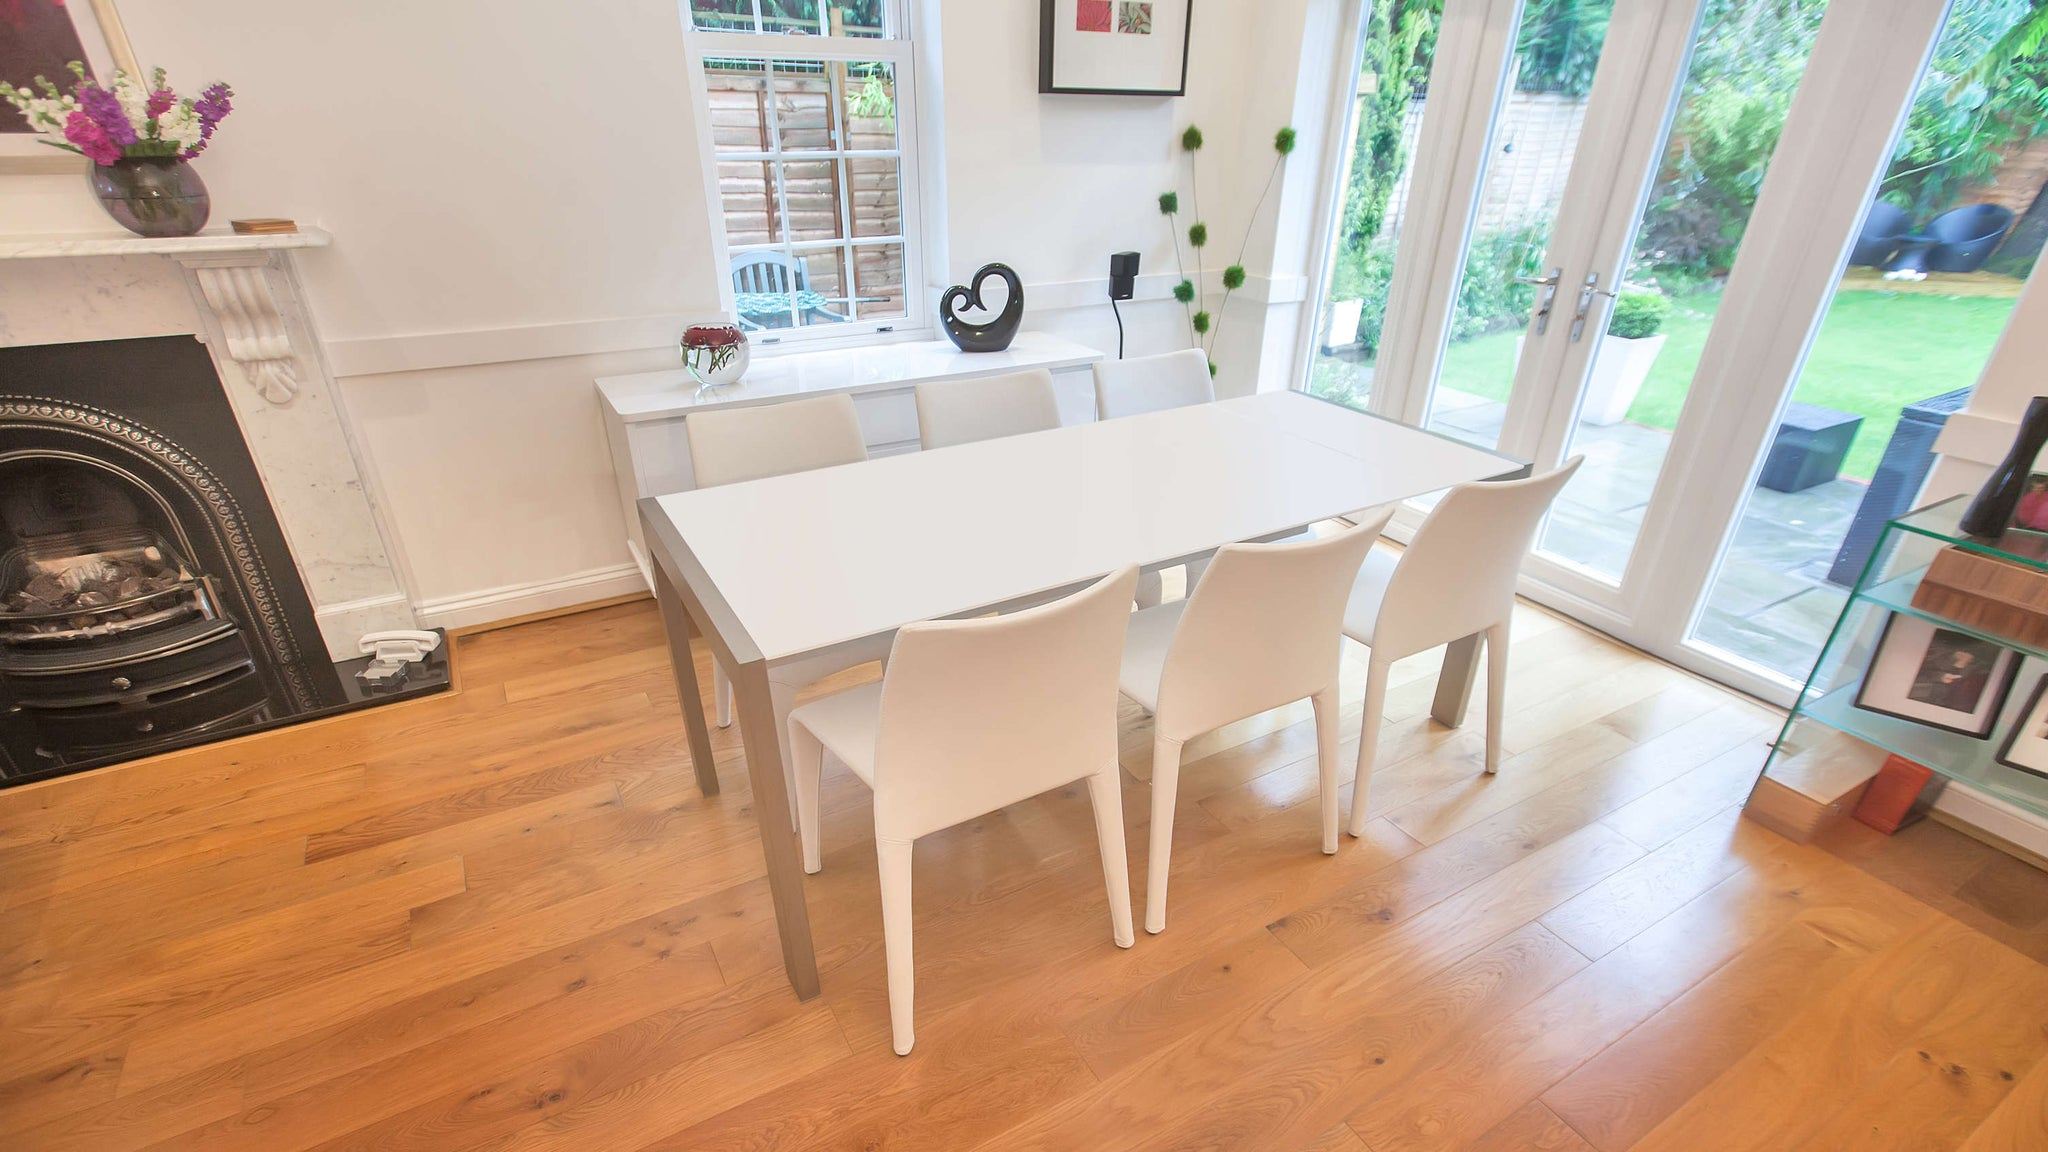 4-8 Seater Dining Table and White Stackable Dining Chairs